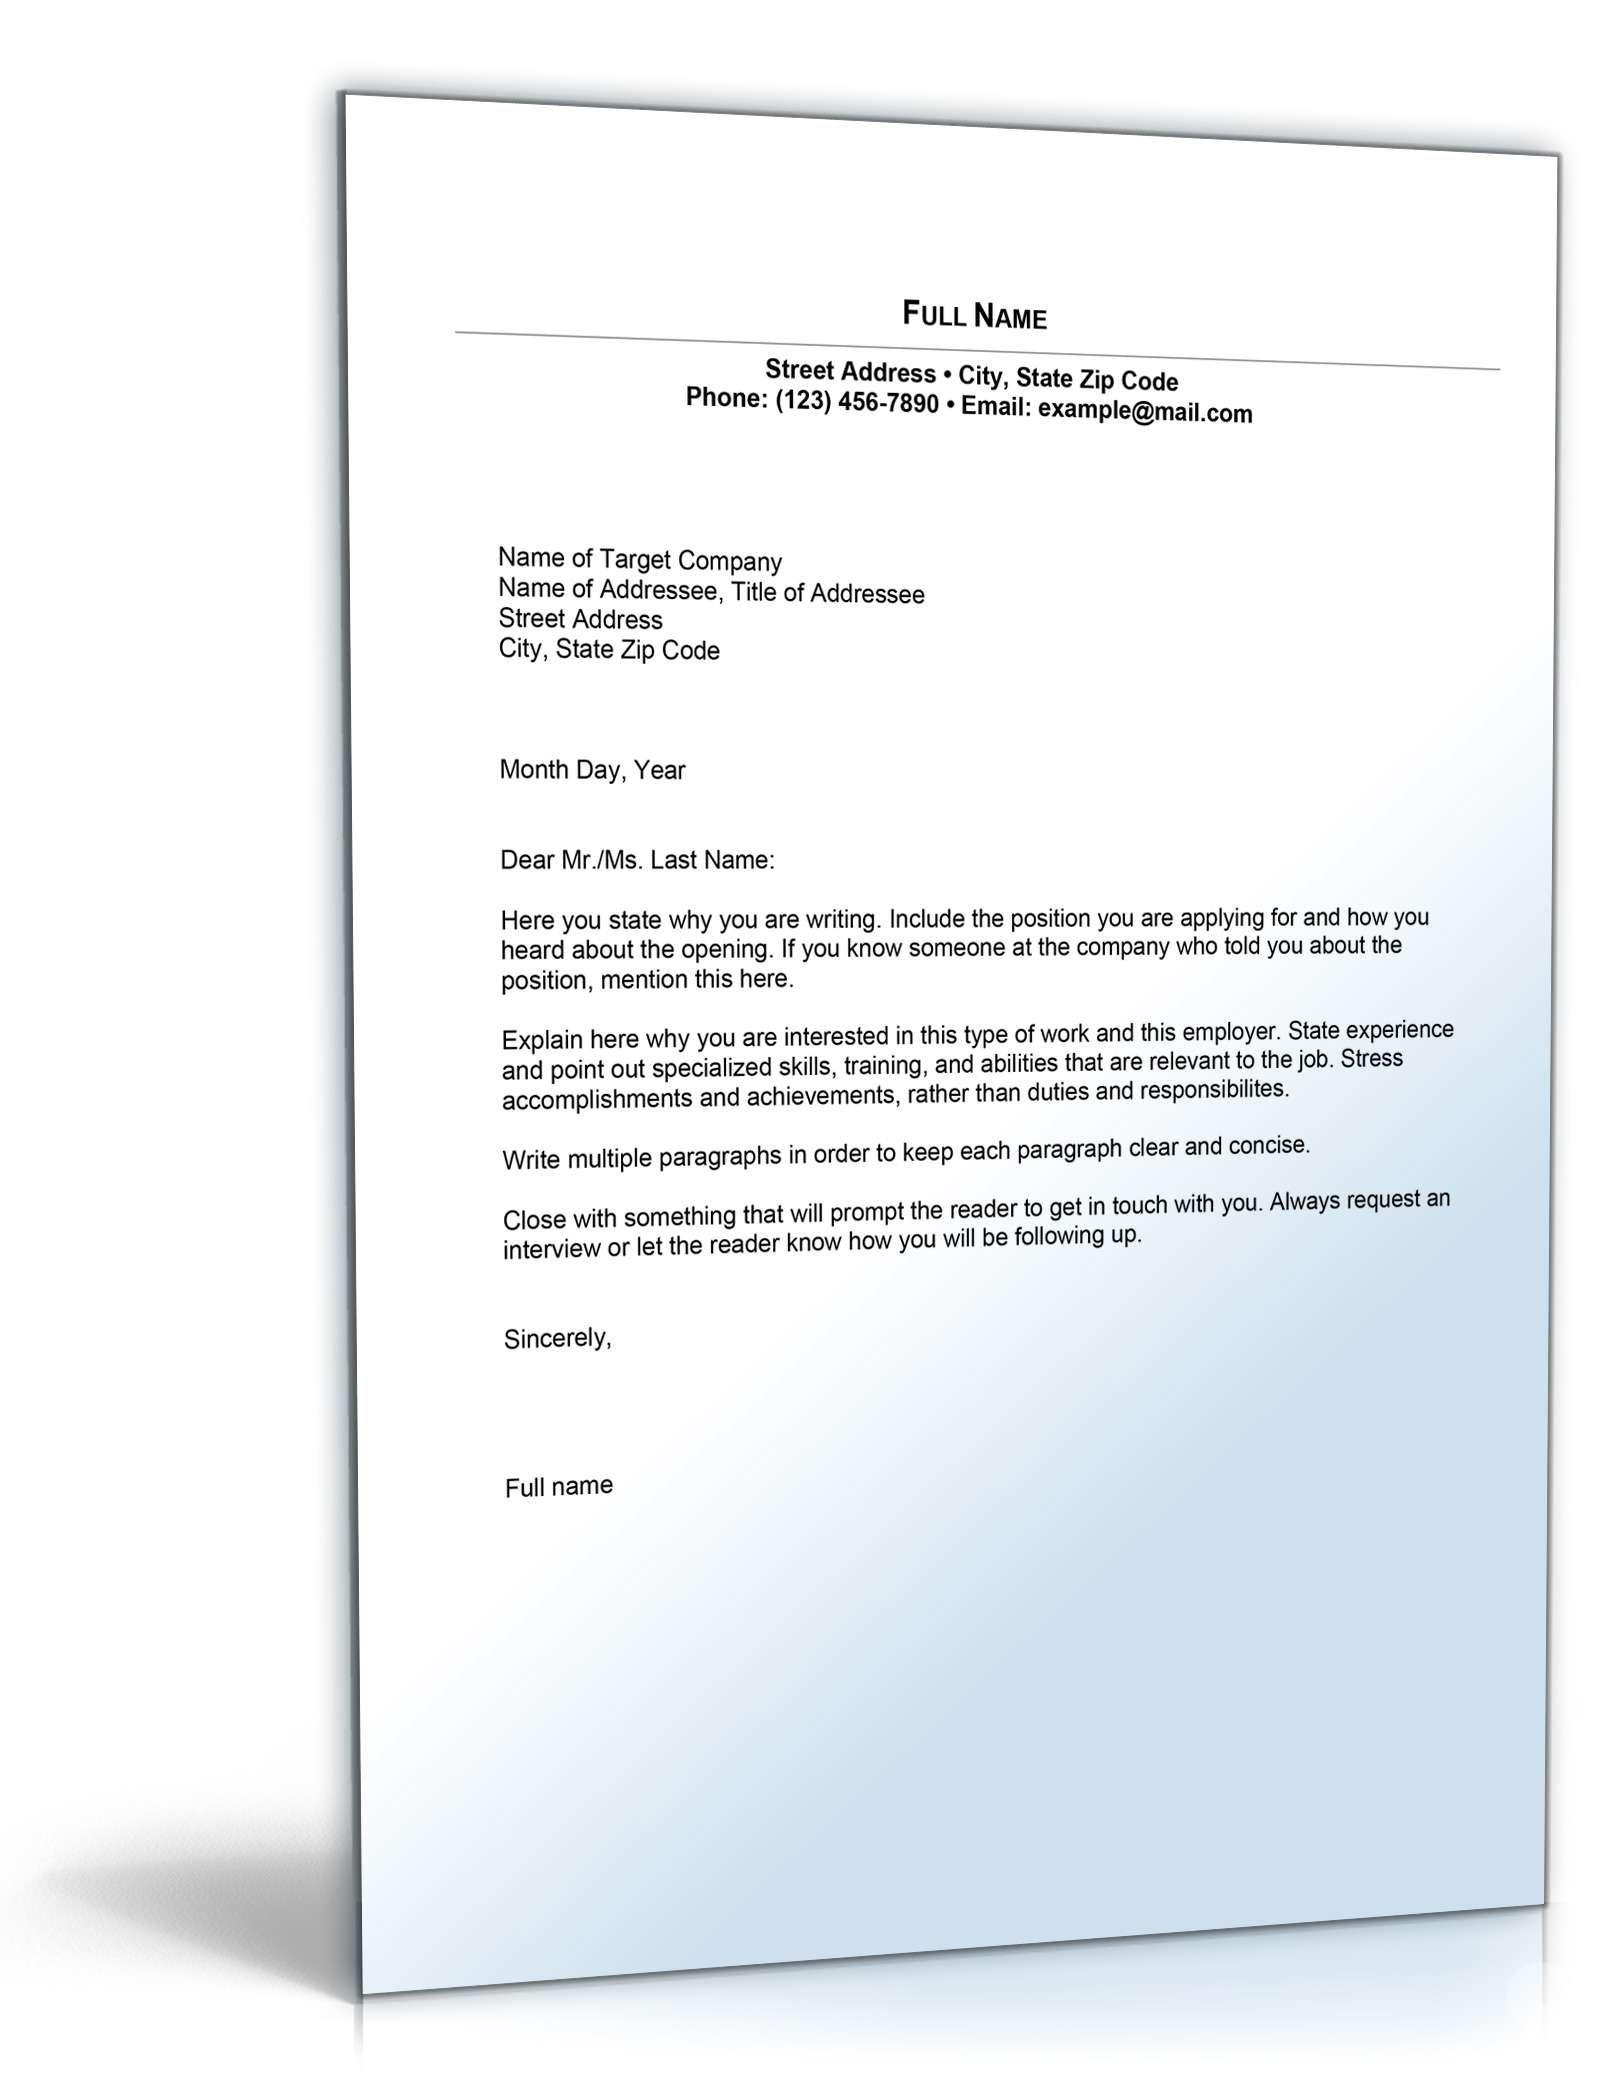 Permalink to Email Cover Letter Sample